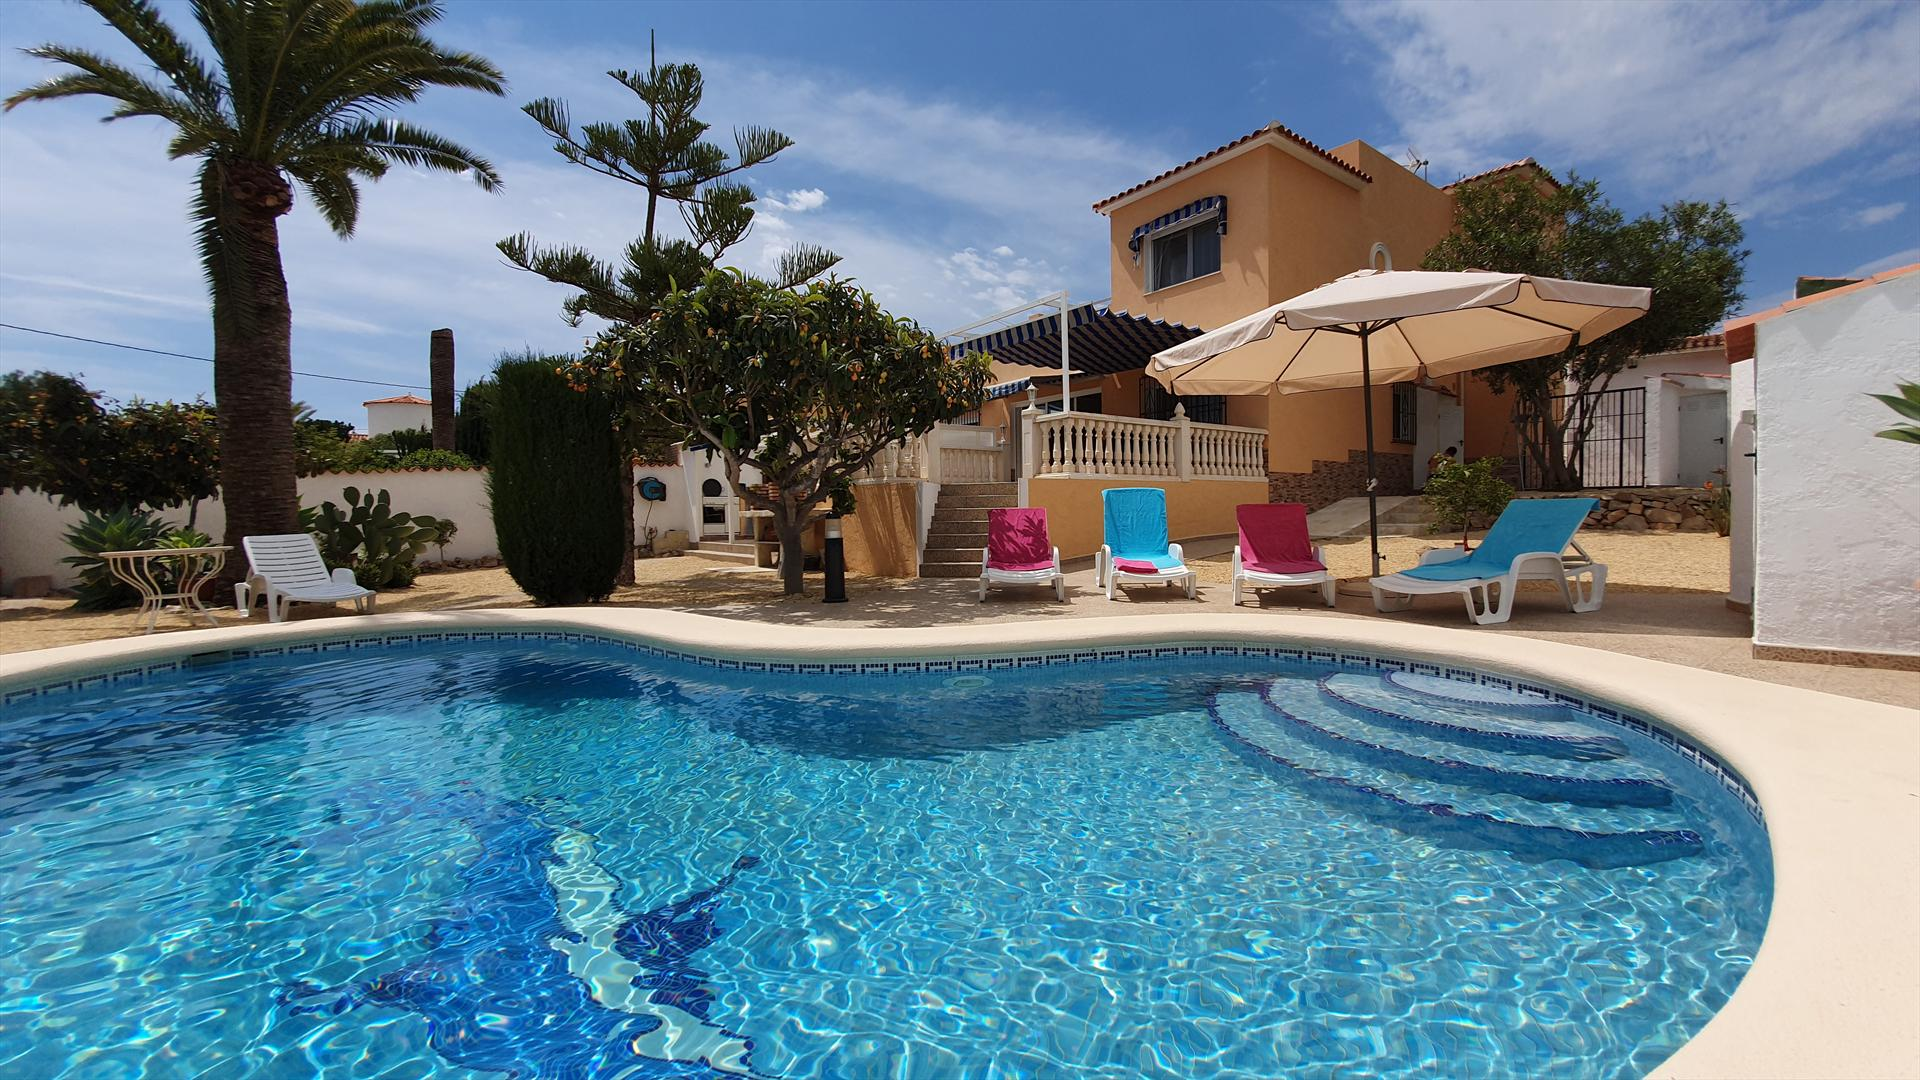 Buenos Dodos, Wonderful and comfortable holiday home in La Nucia, on the Costa Blanca, Spain  with private pool for 8 persons.....